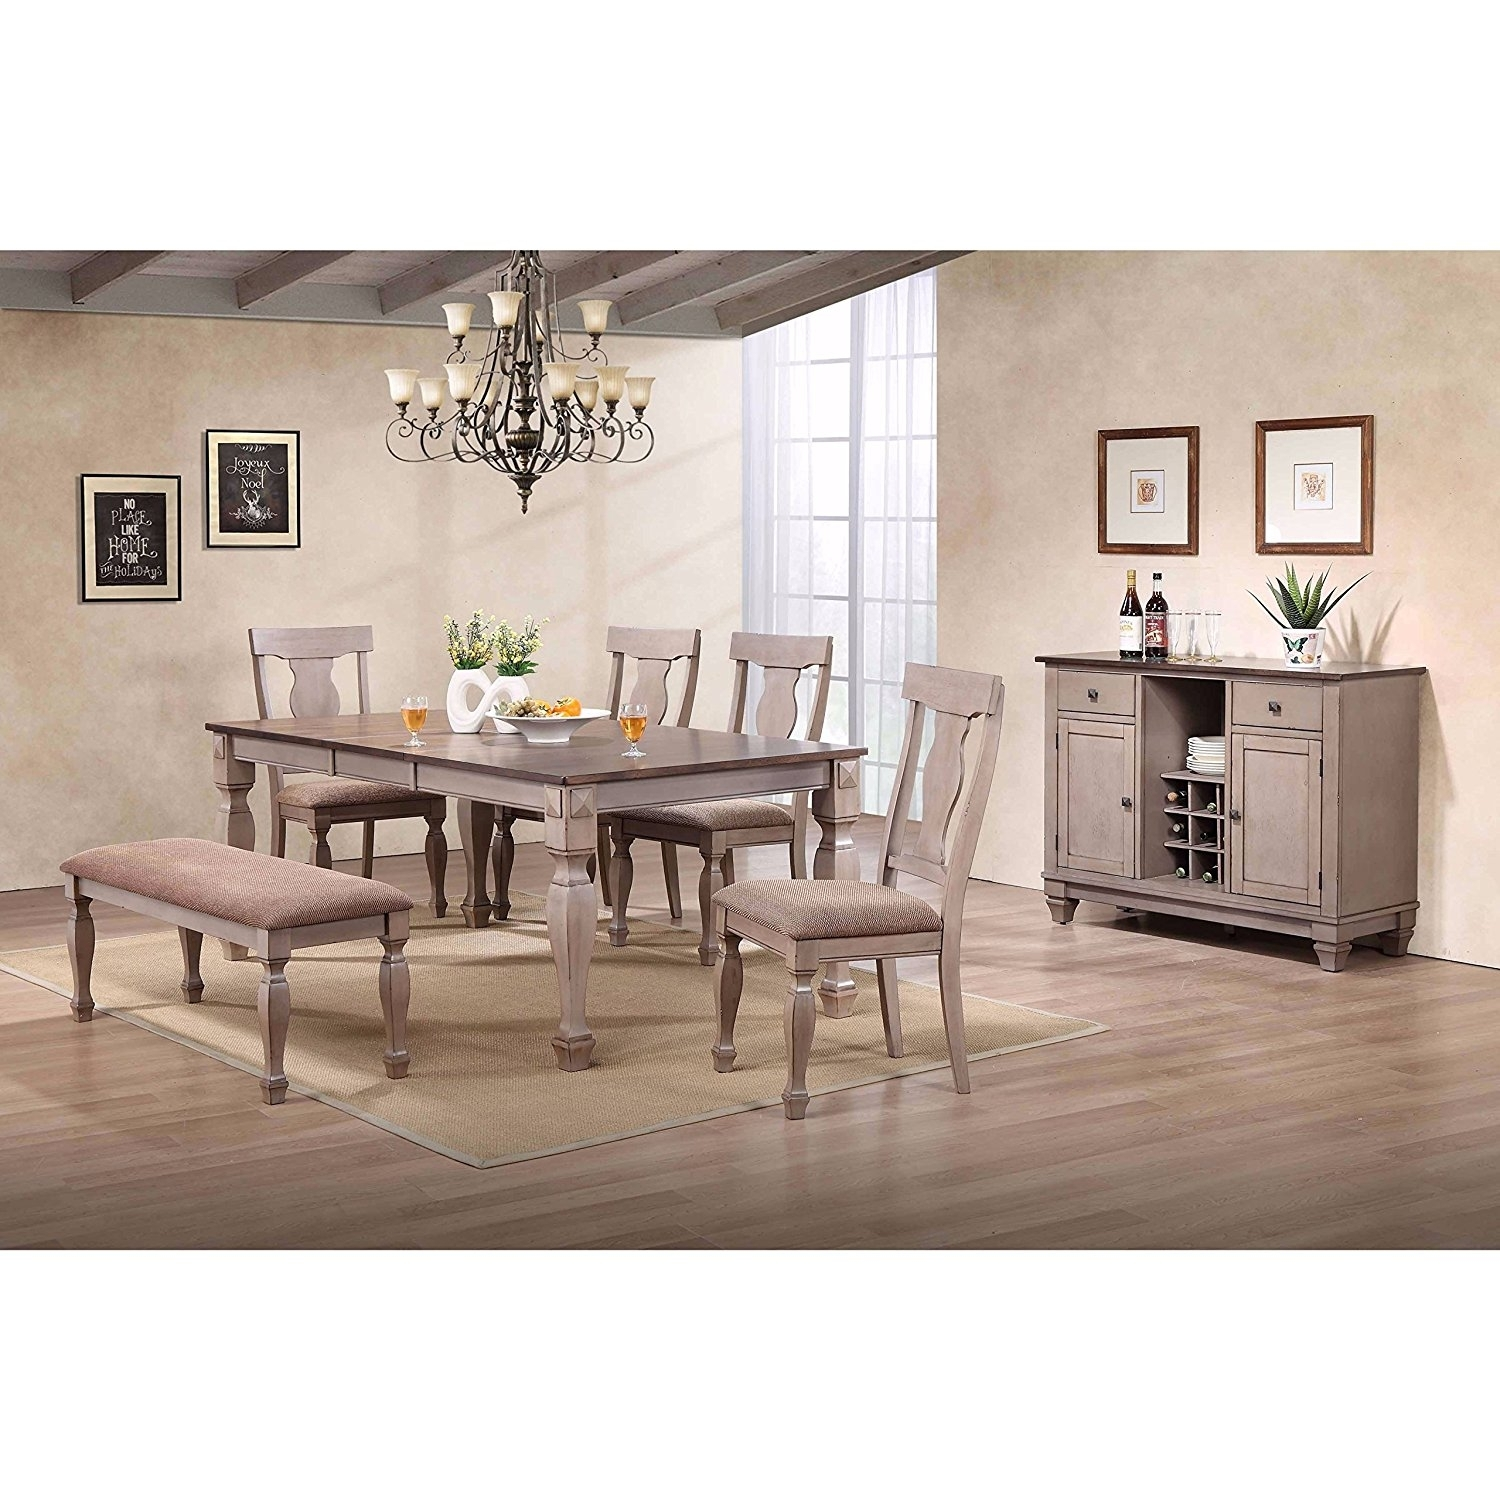 Cheap Two Tone Dining Room, Find Two Tone Dining Room Deals On Line Intended For Latest Candice Ii 5 Piece Round Dining Sets With Slat Back Side Chairs (Image 8 of 20)